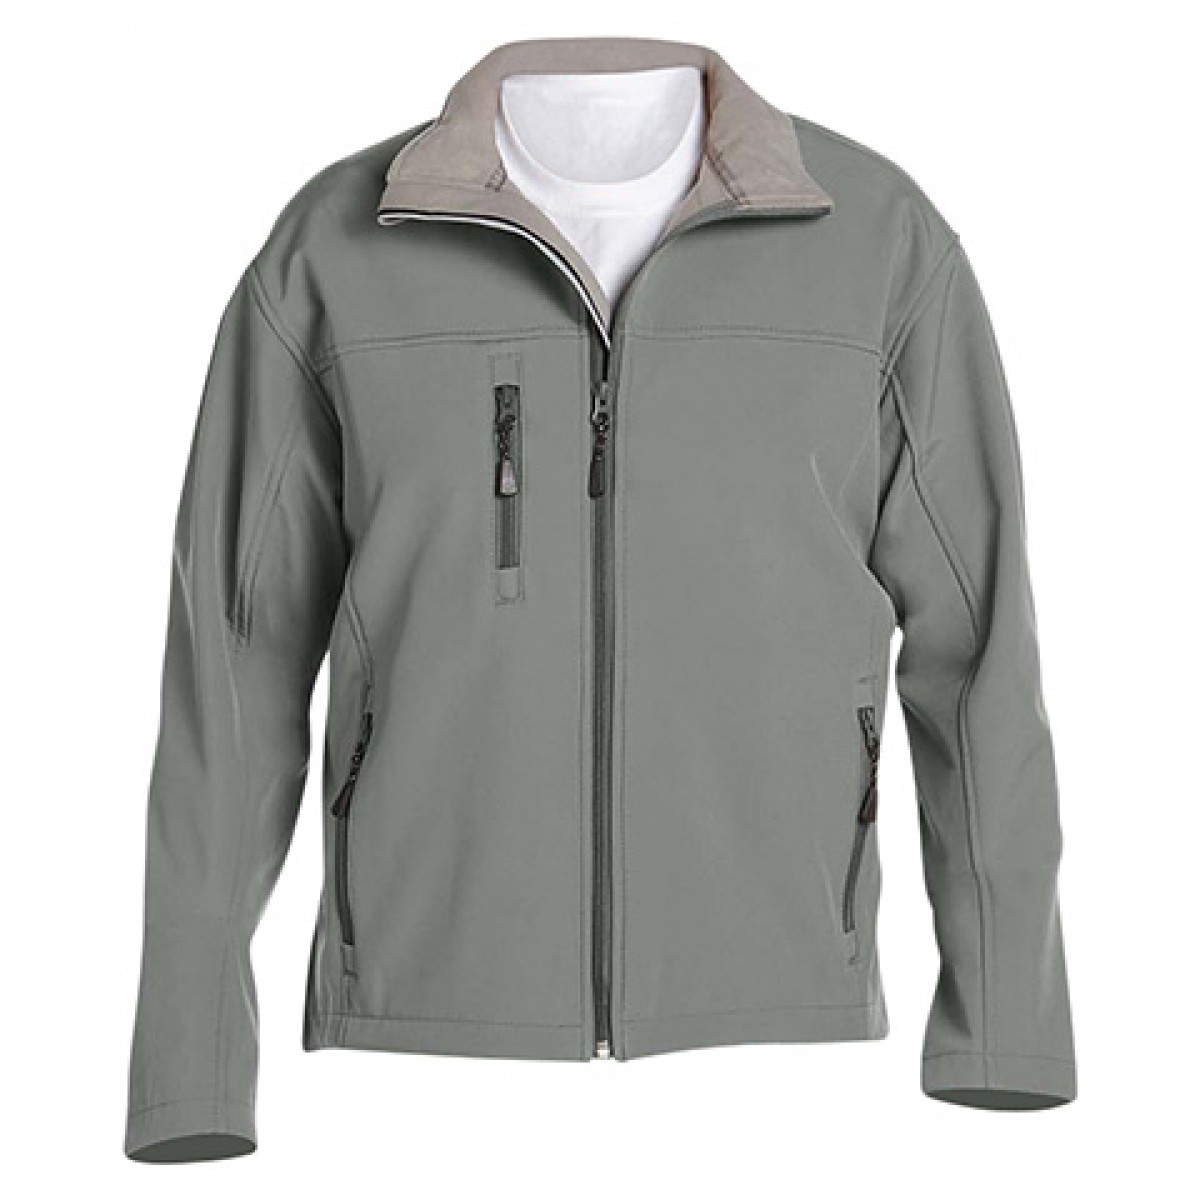 Men's Soft Shell Jacket-Charocal-S